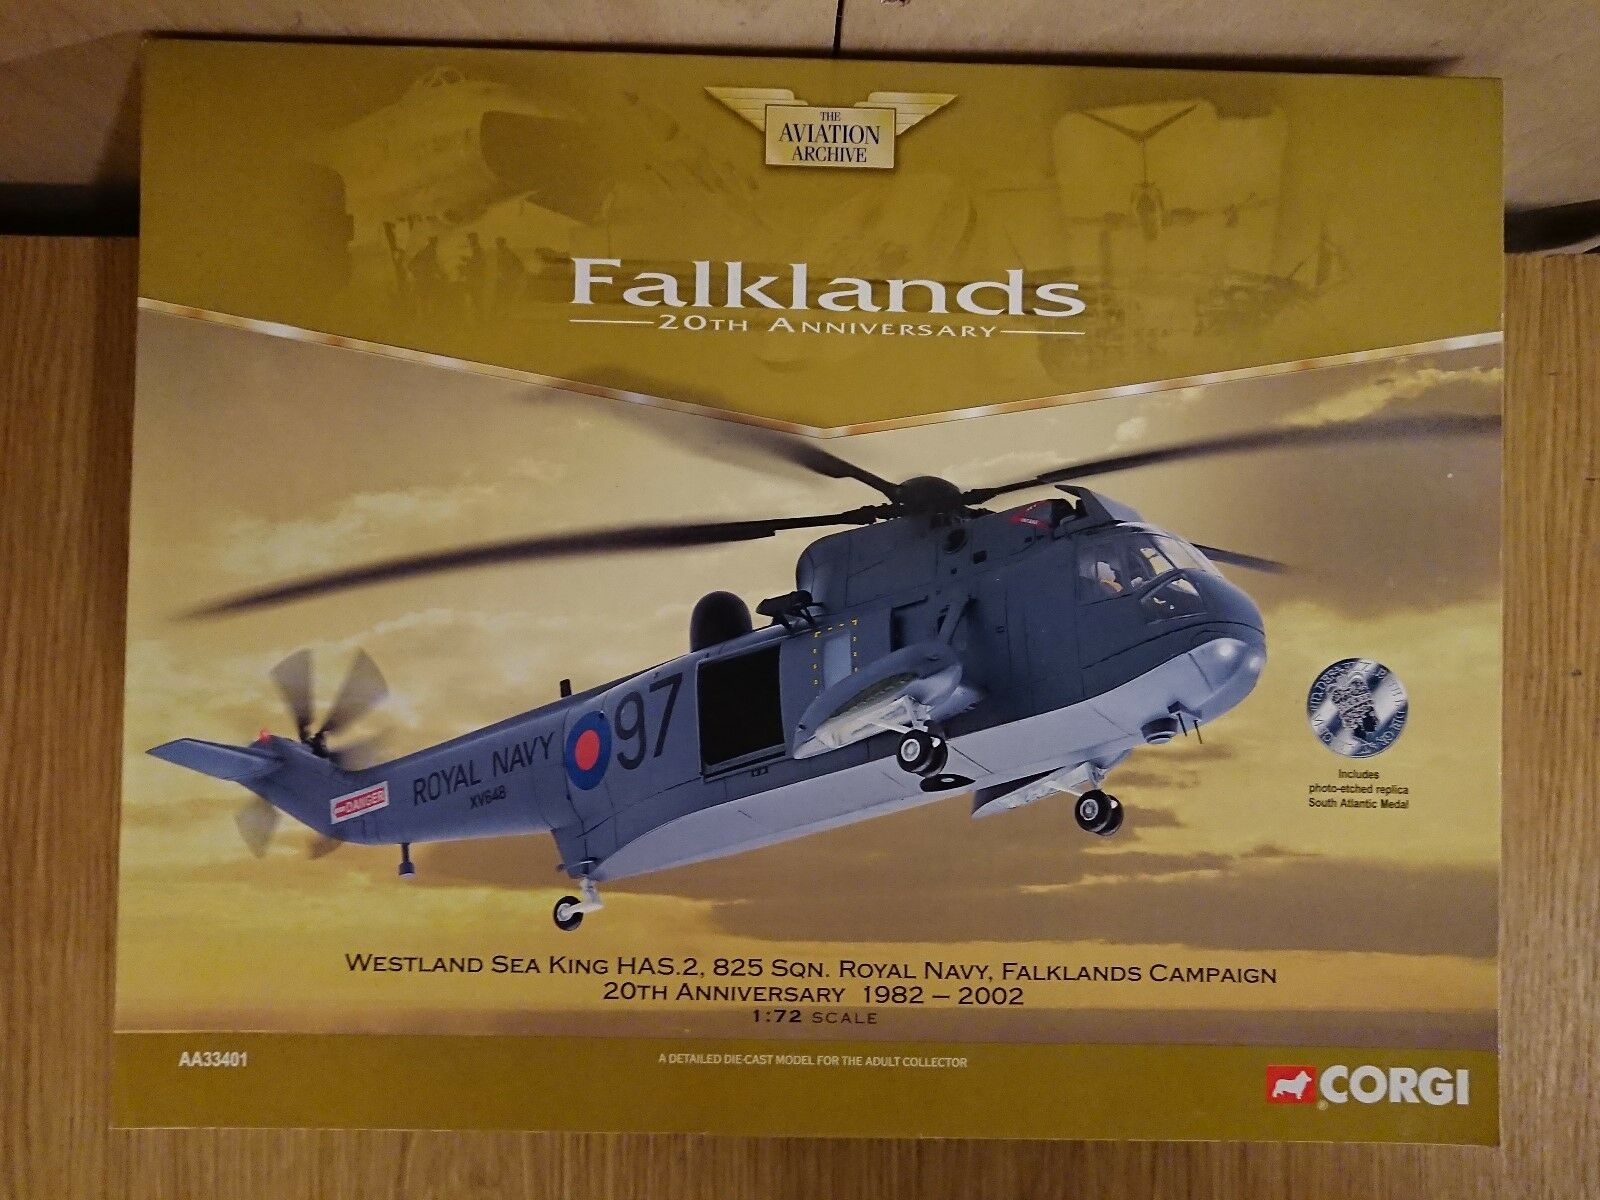 CORGI AA33401 Westland Sea King HAS.2 RN FALKLAND 20th ANNIVERSARIO 1982-2002